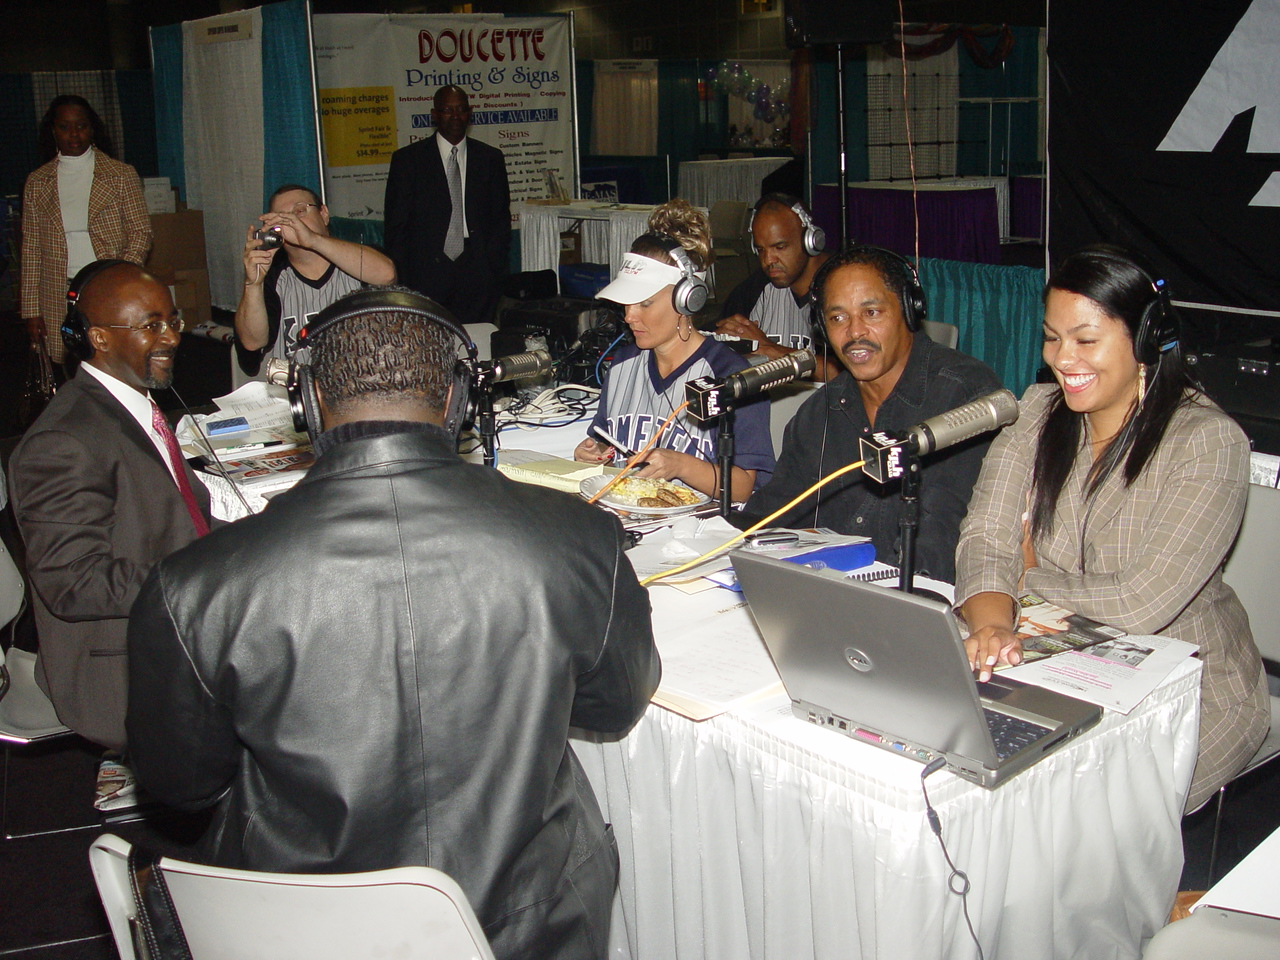 Premier Sponsor Black Enterprise Magazine was a guest on the live bropadcast by KJLH's Cliff Winston and the Home Team. <br /> <br /> Photo by Lauren Bradley